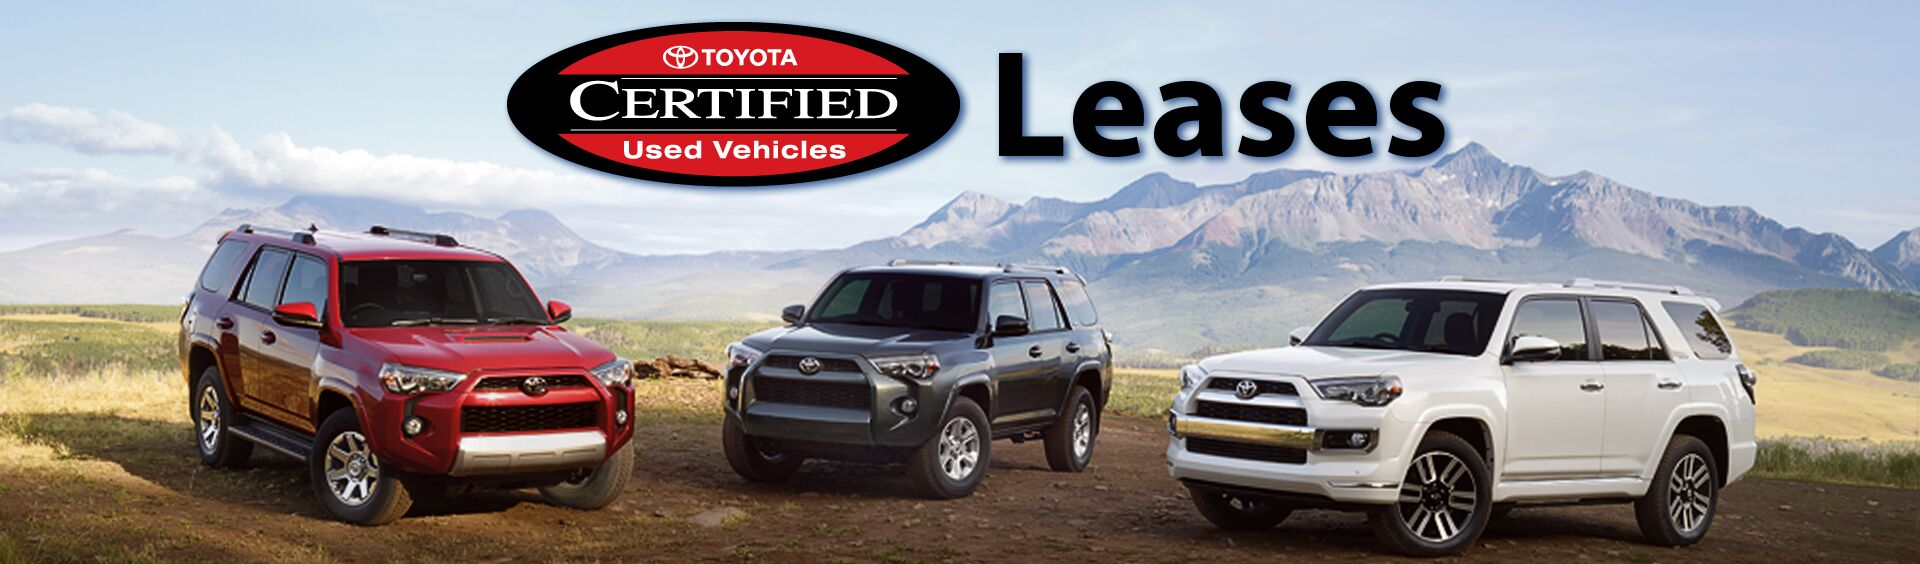 Toyota certified used vehicle leases